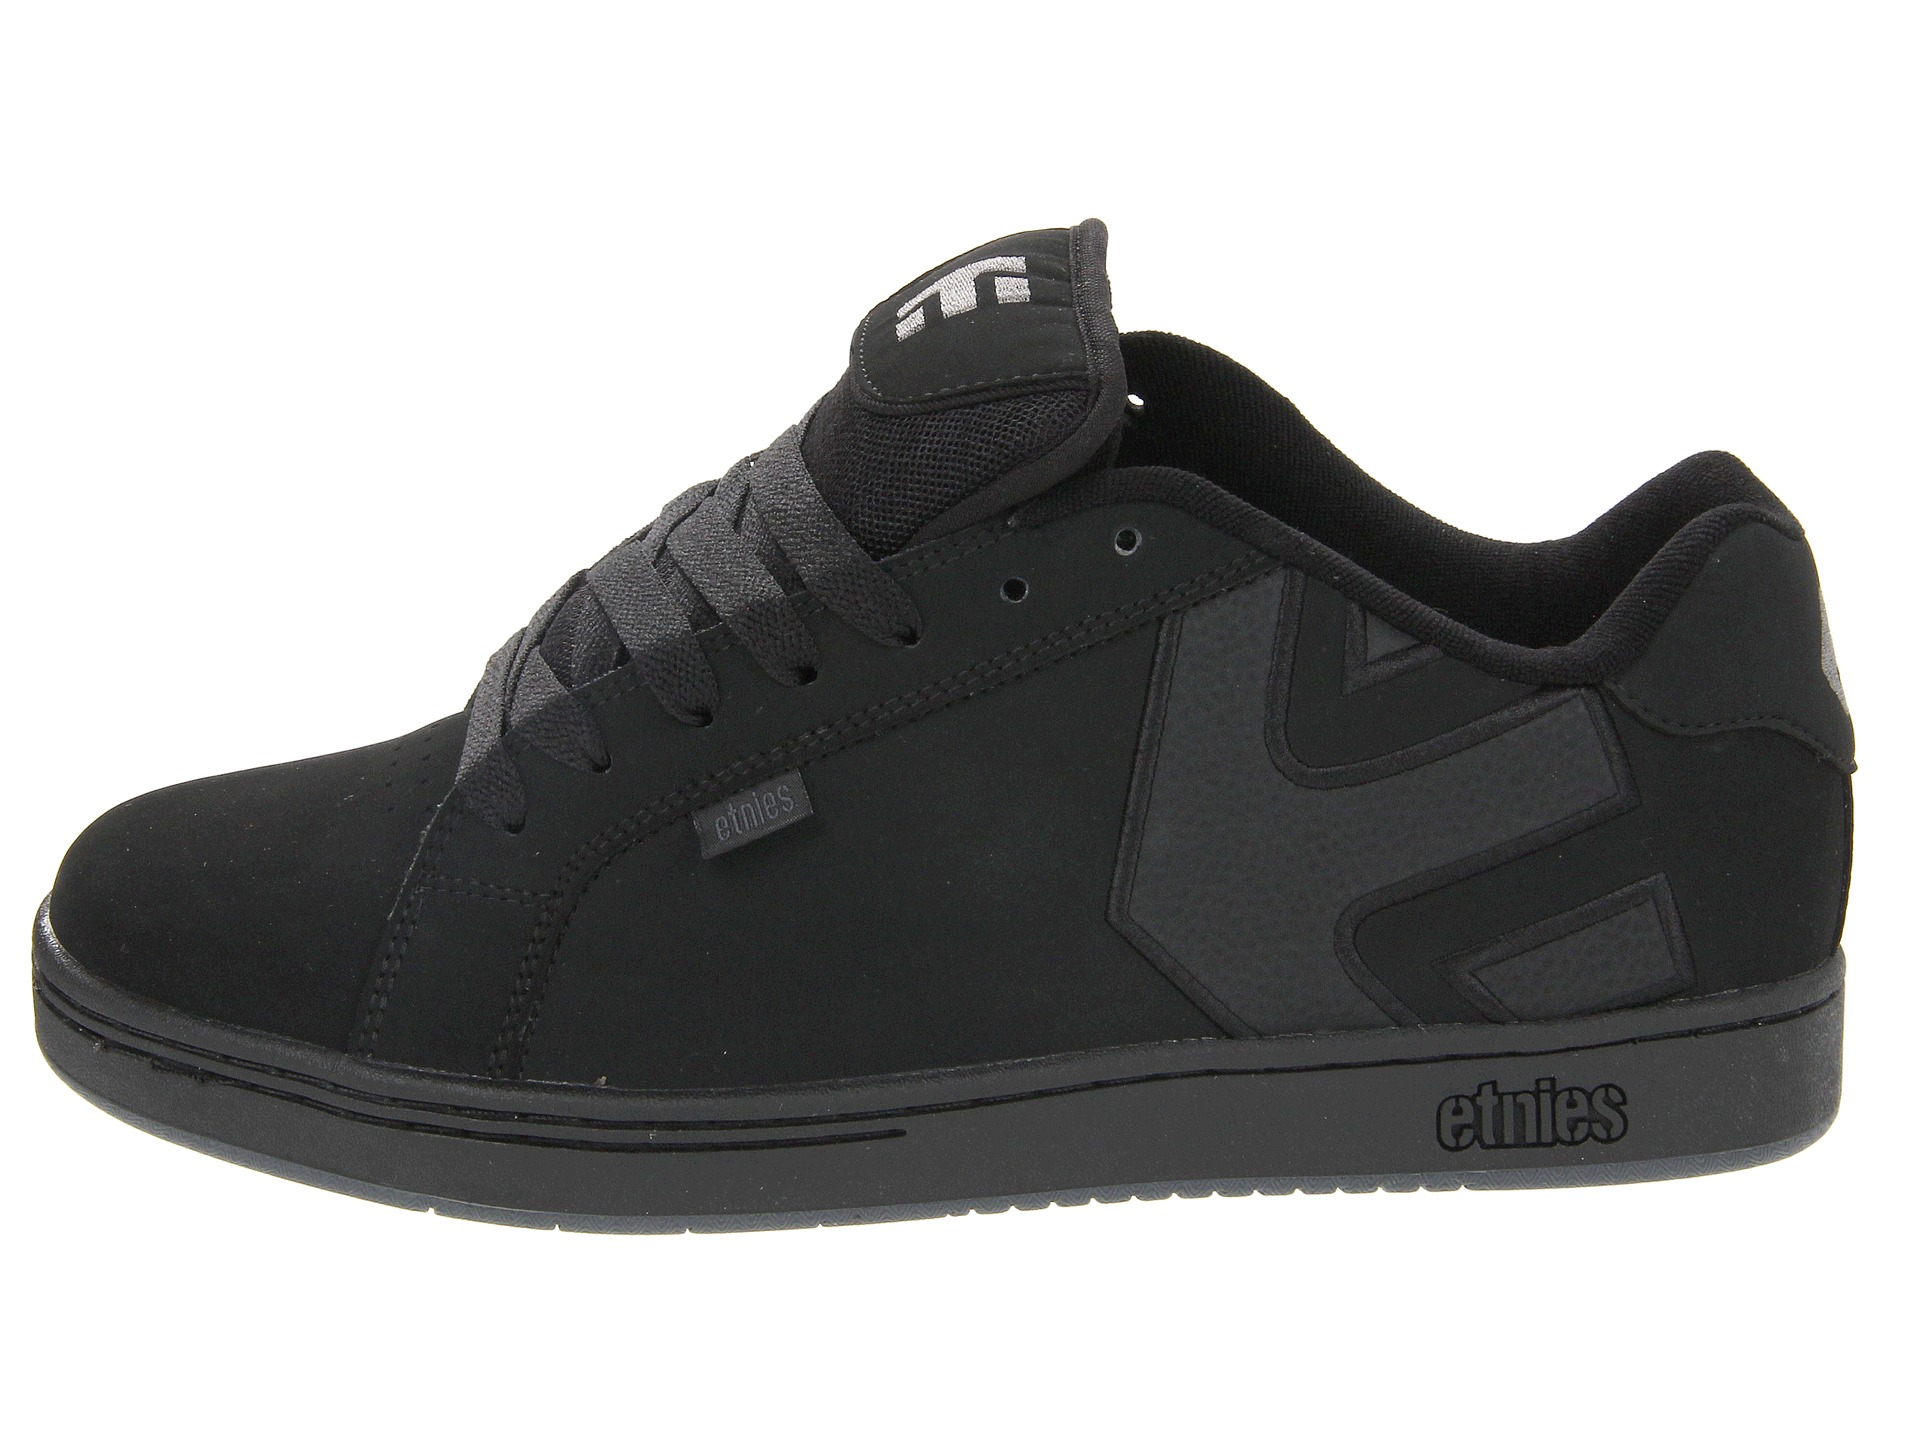 Zappos Mens Shoes